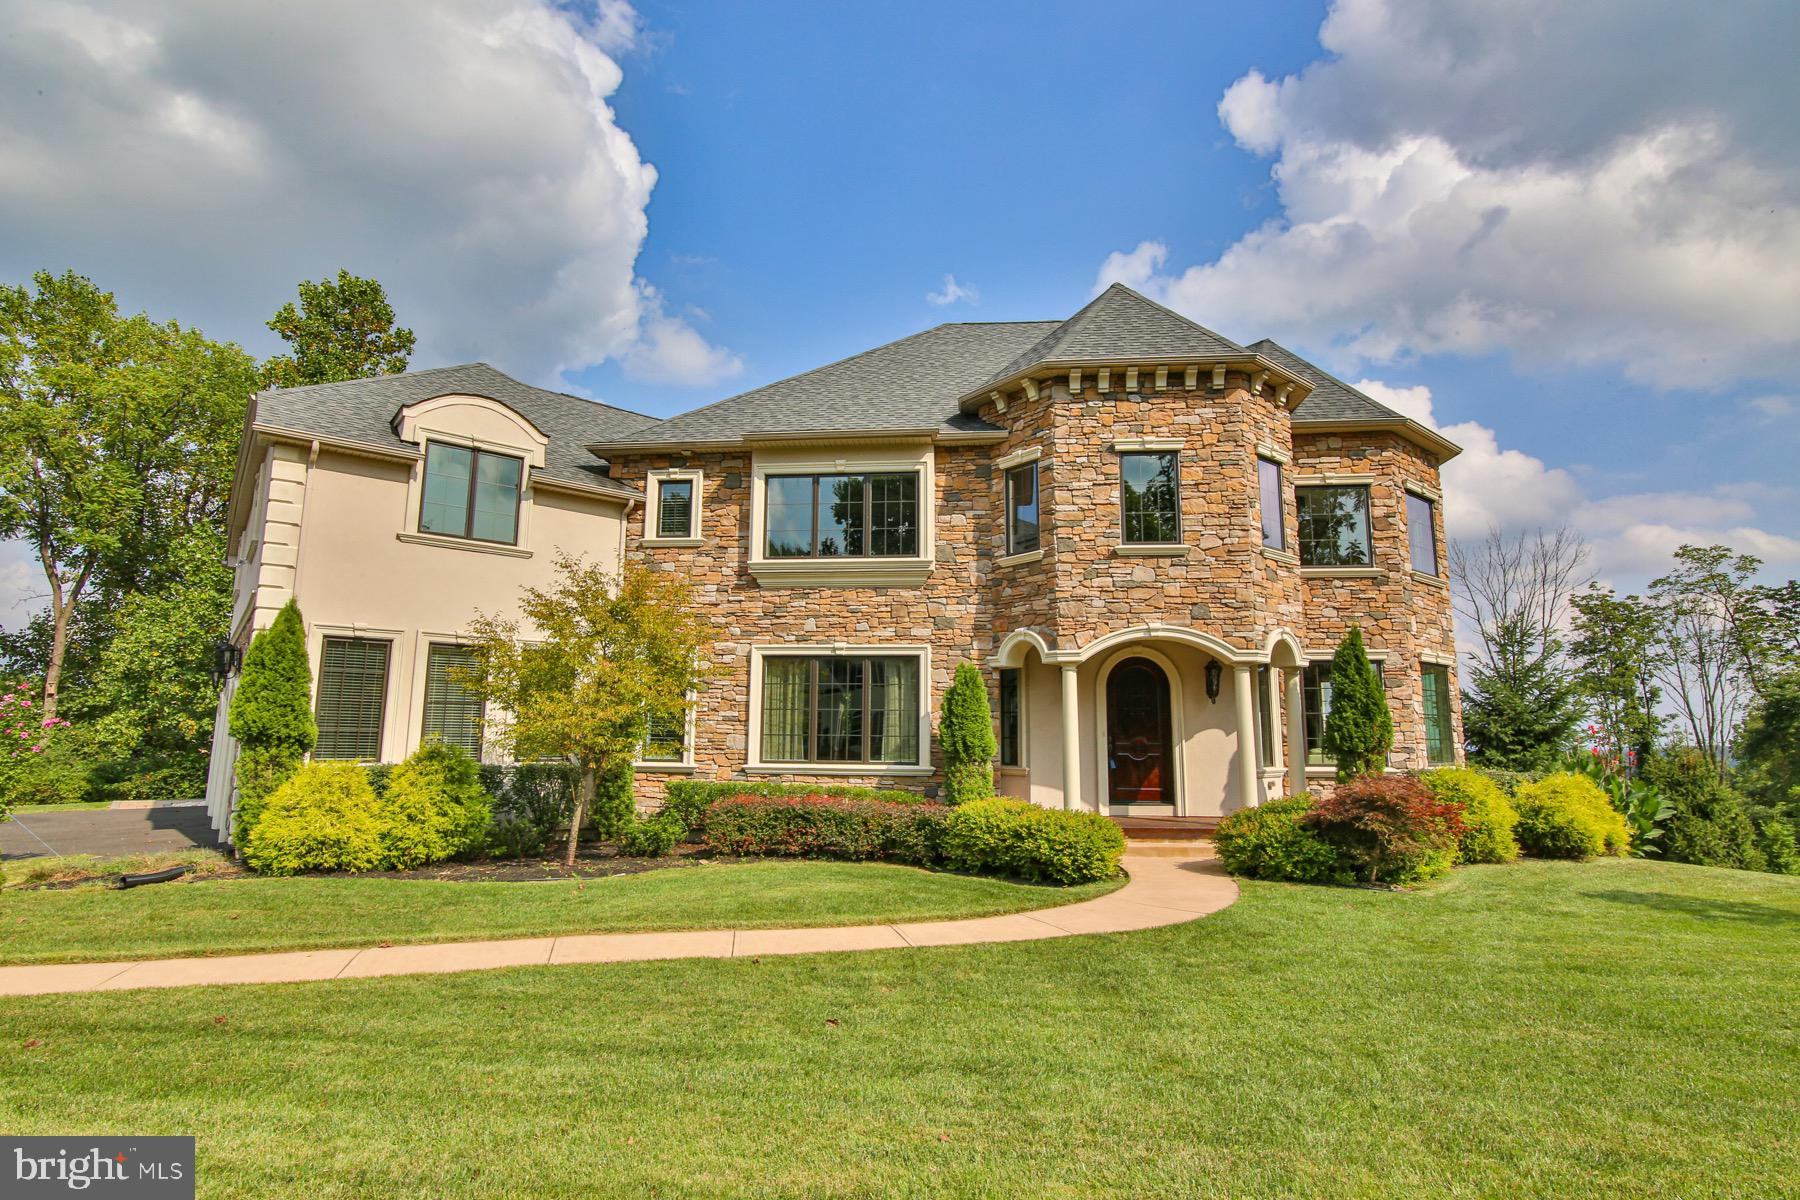 5010 MAJESTIC DRIVE, COOPERSBURG, PA 18036